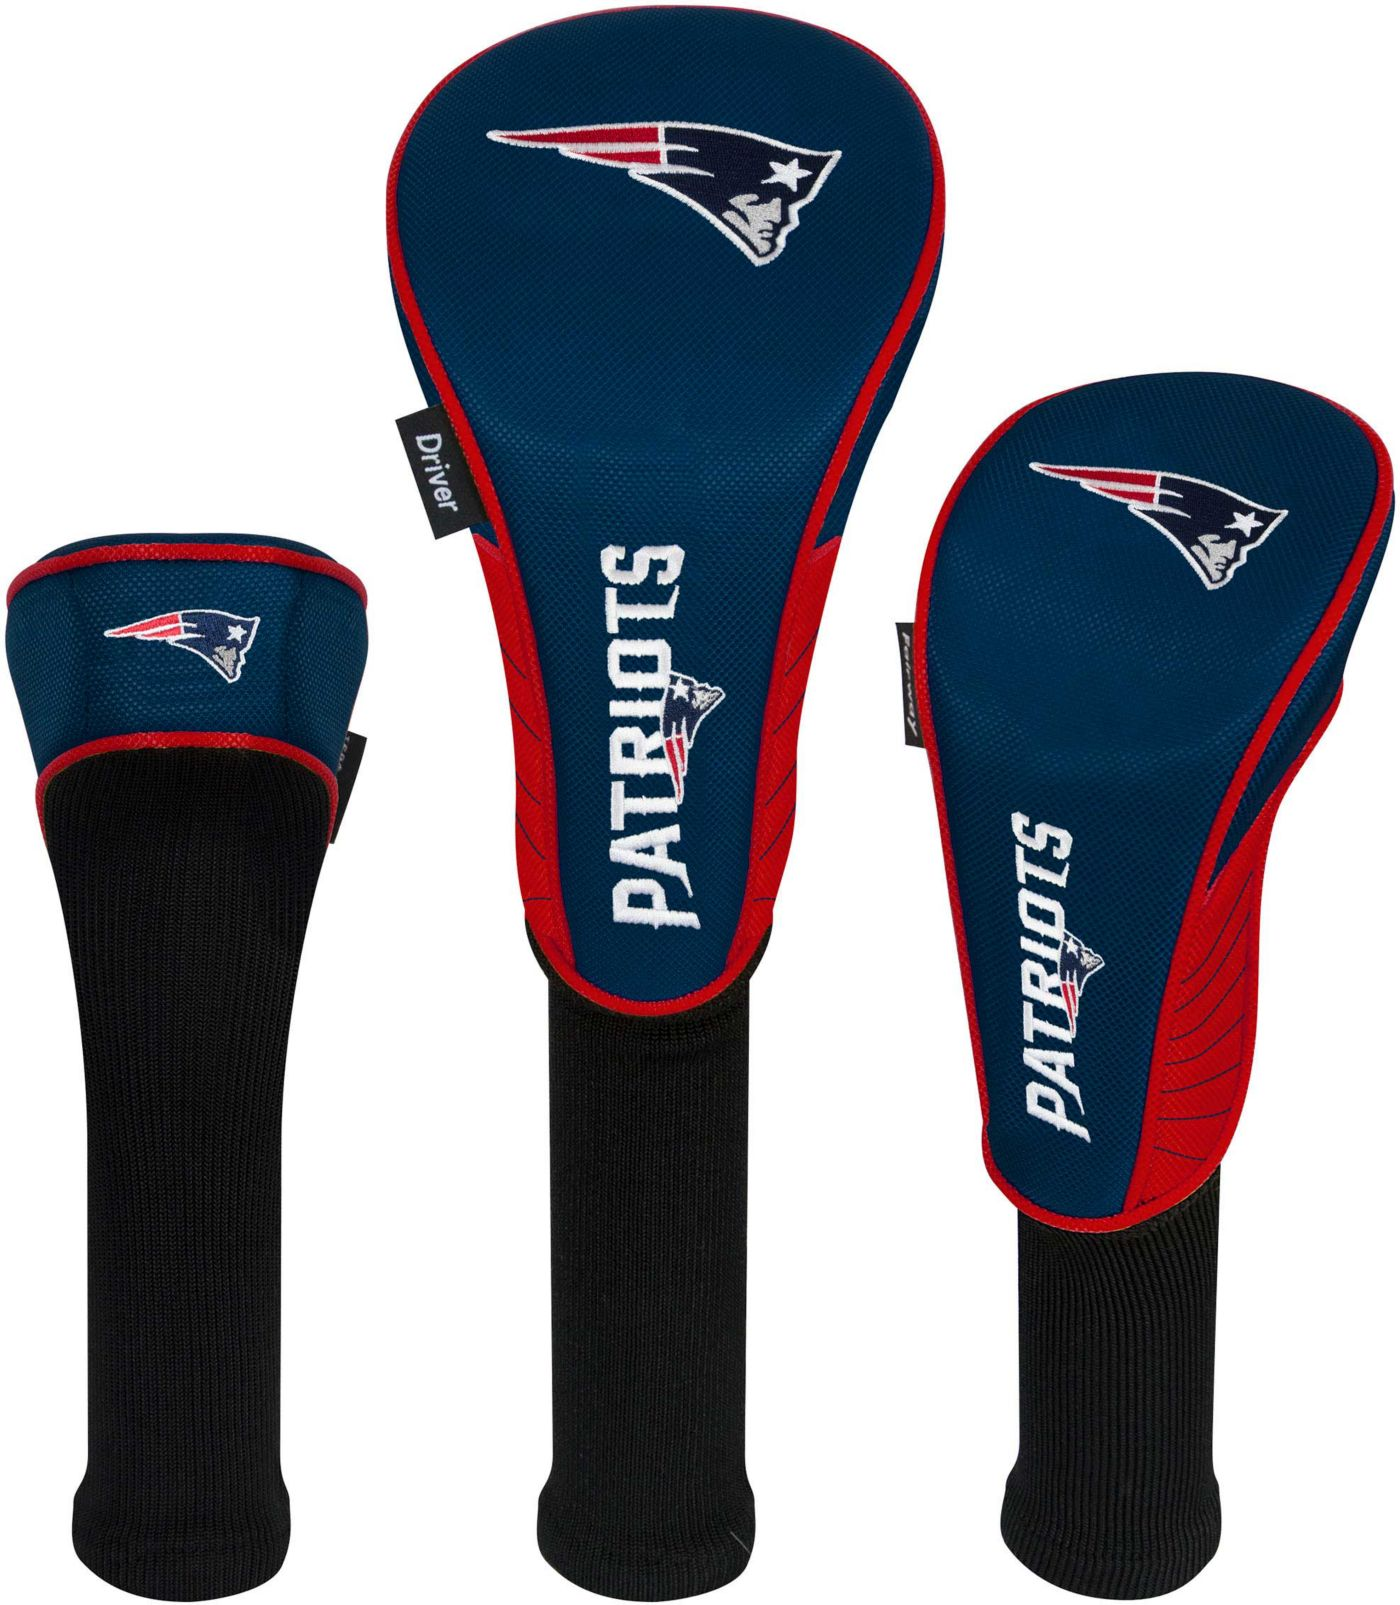 Team Effort New England Patriots Headcovers - 3 Pack